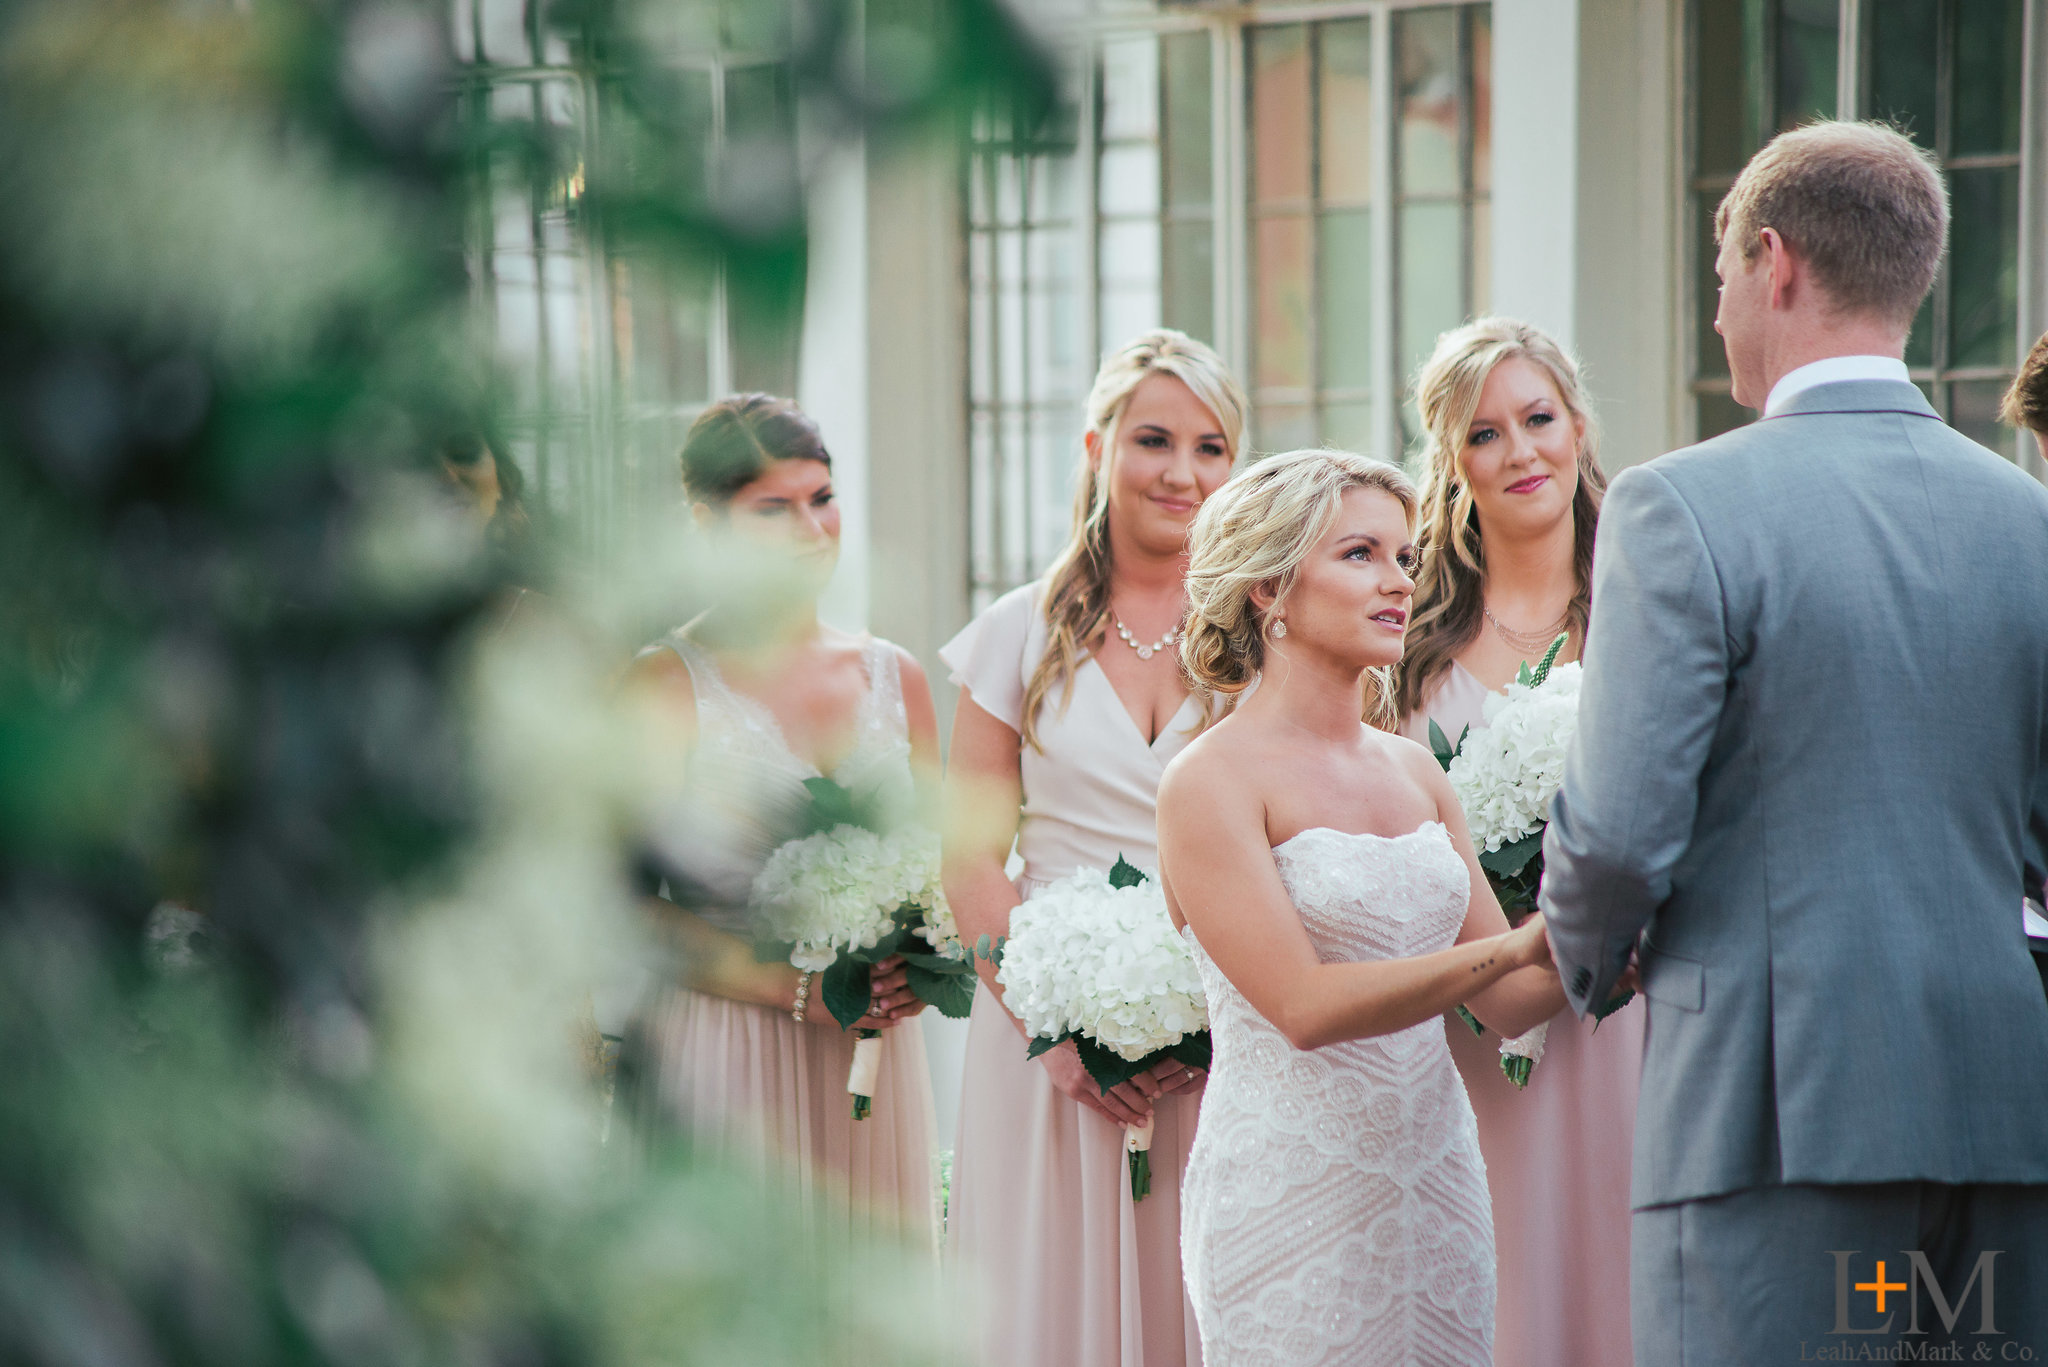 Solarium Decatur Wedding | LeahAndMark & Co.